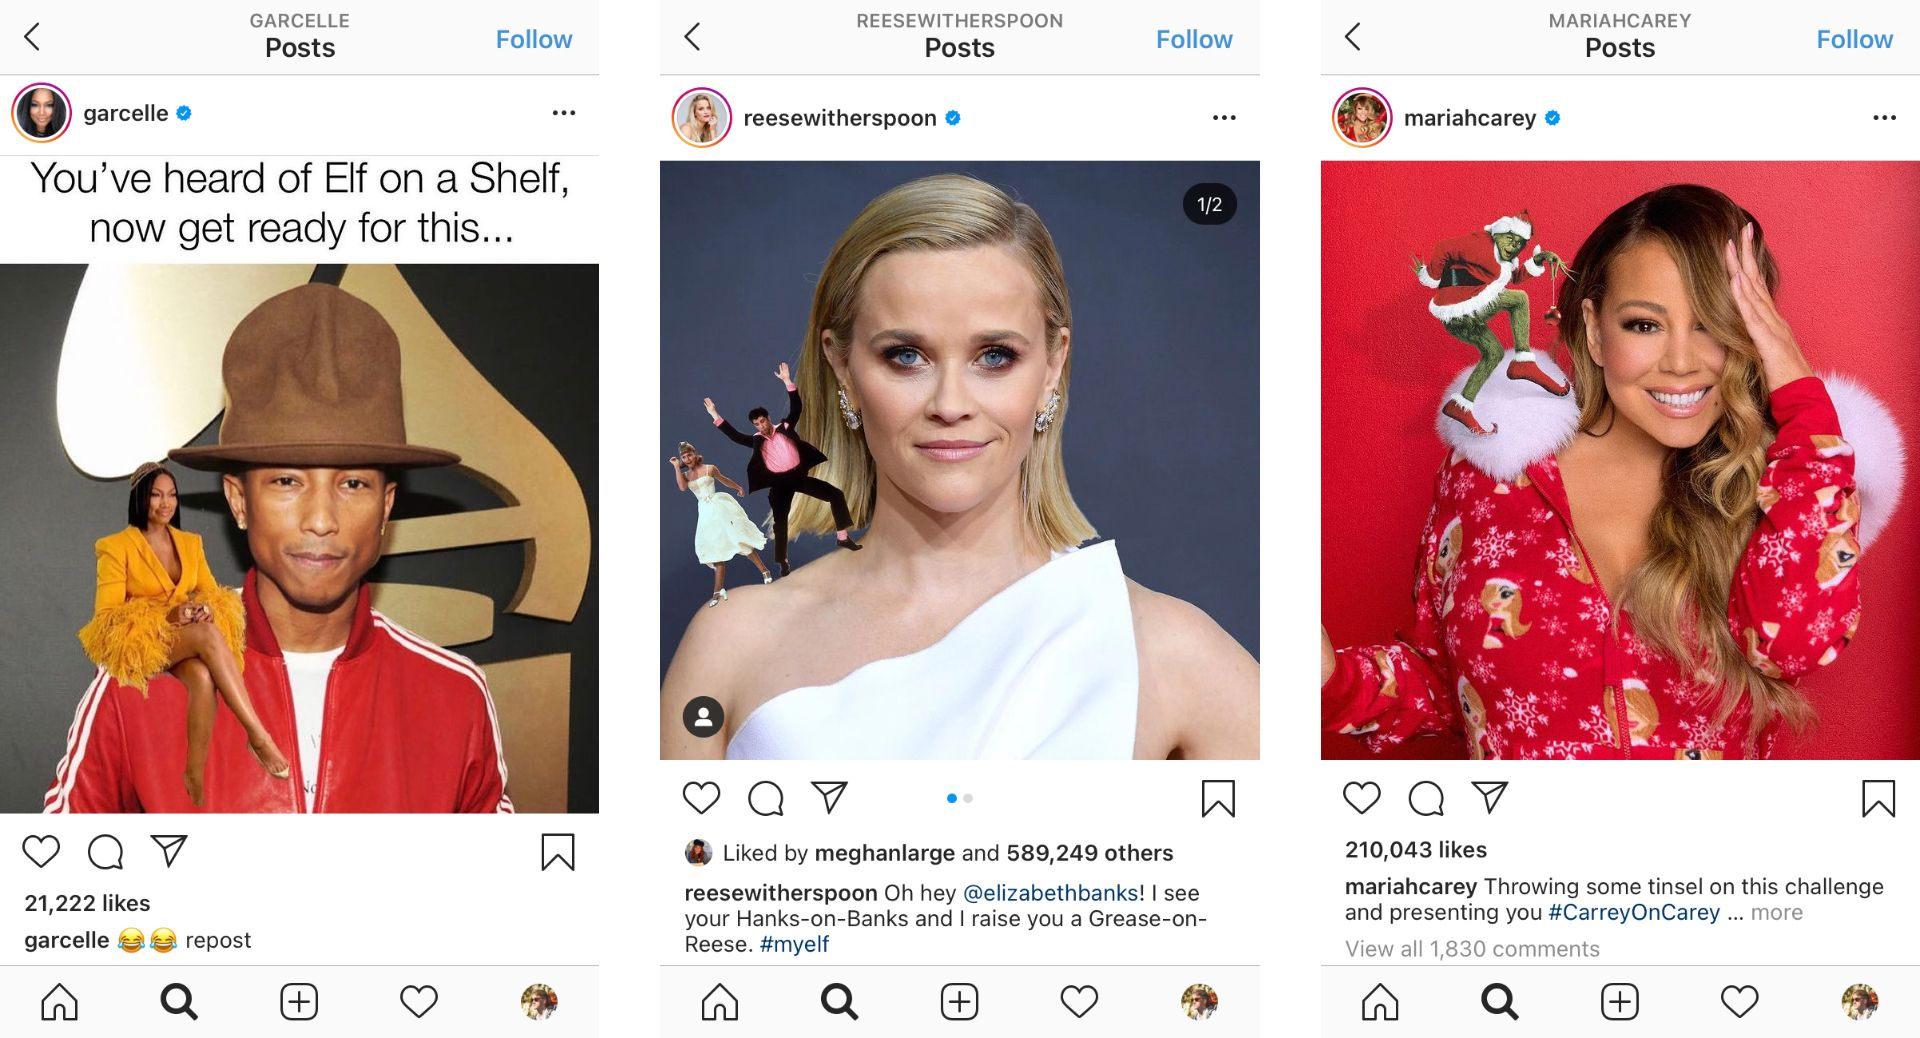 Screenshots of Instagram posts from Garcelle Beauvais, Reese Witherspoon, and Mariah Carey.